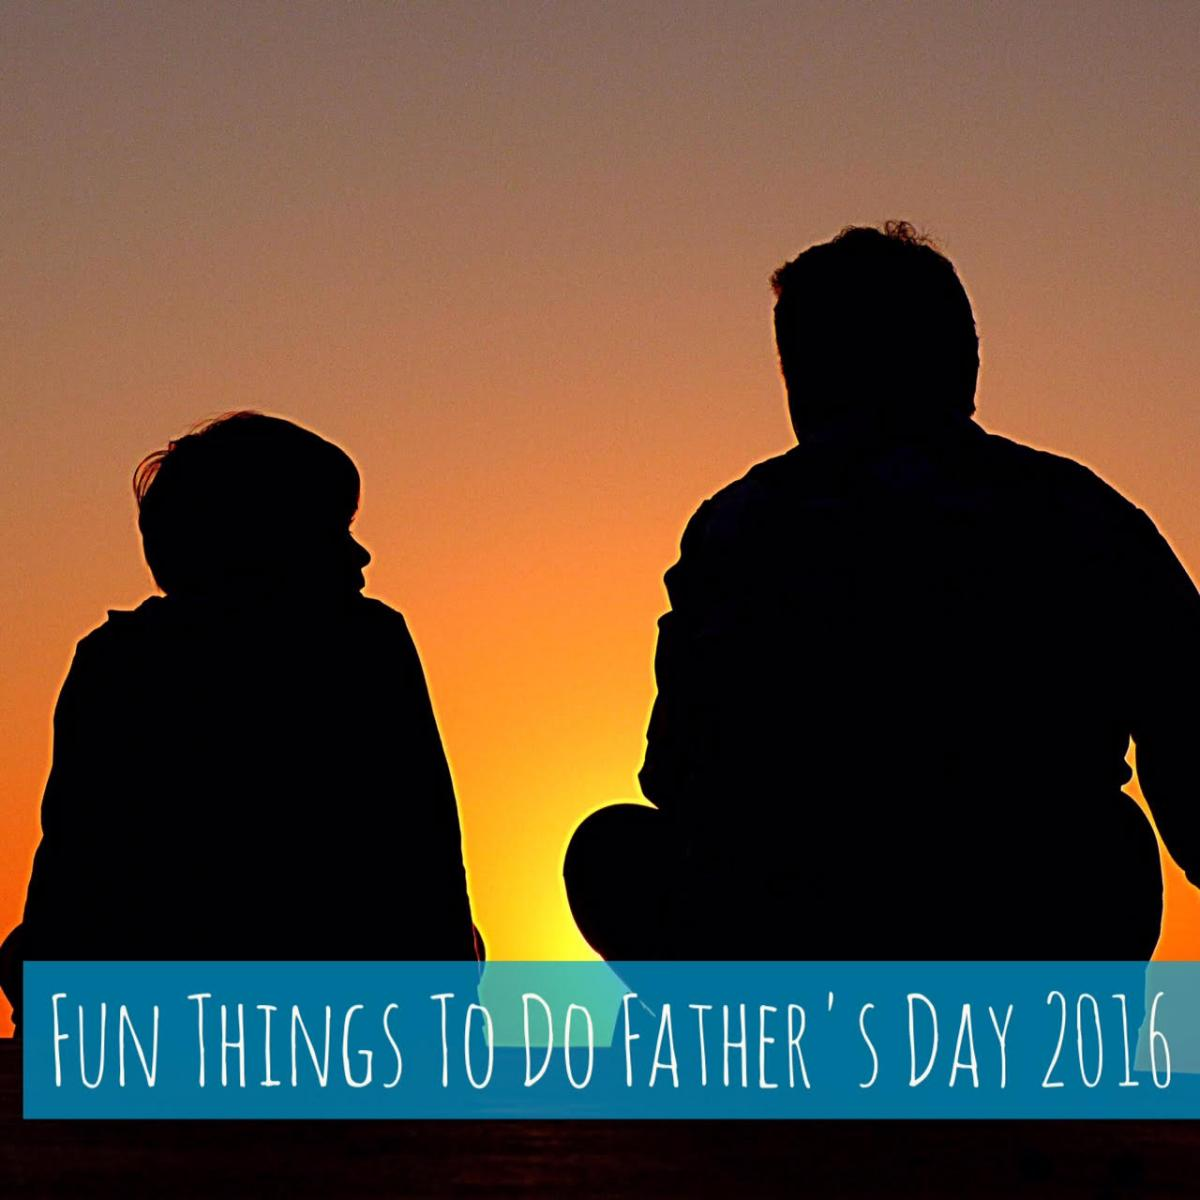 Fun Things To Do Father's Day 2016